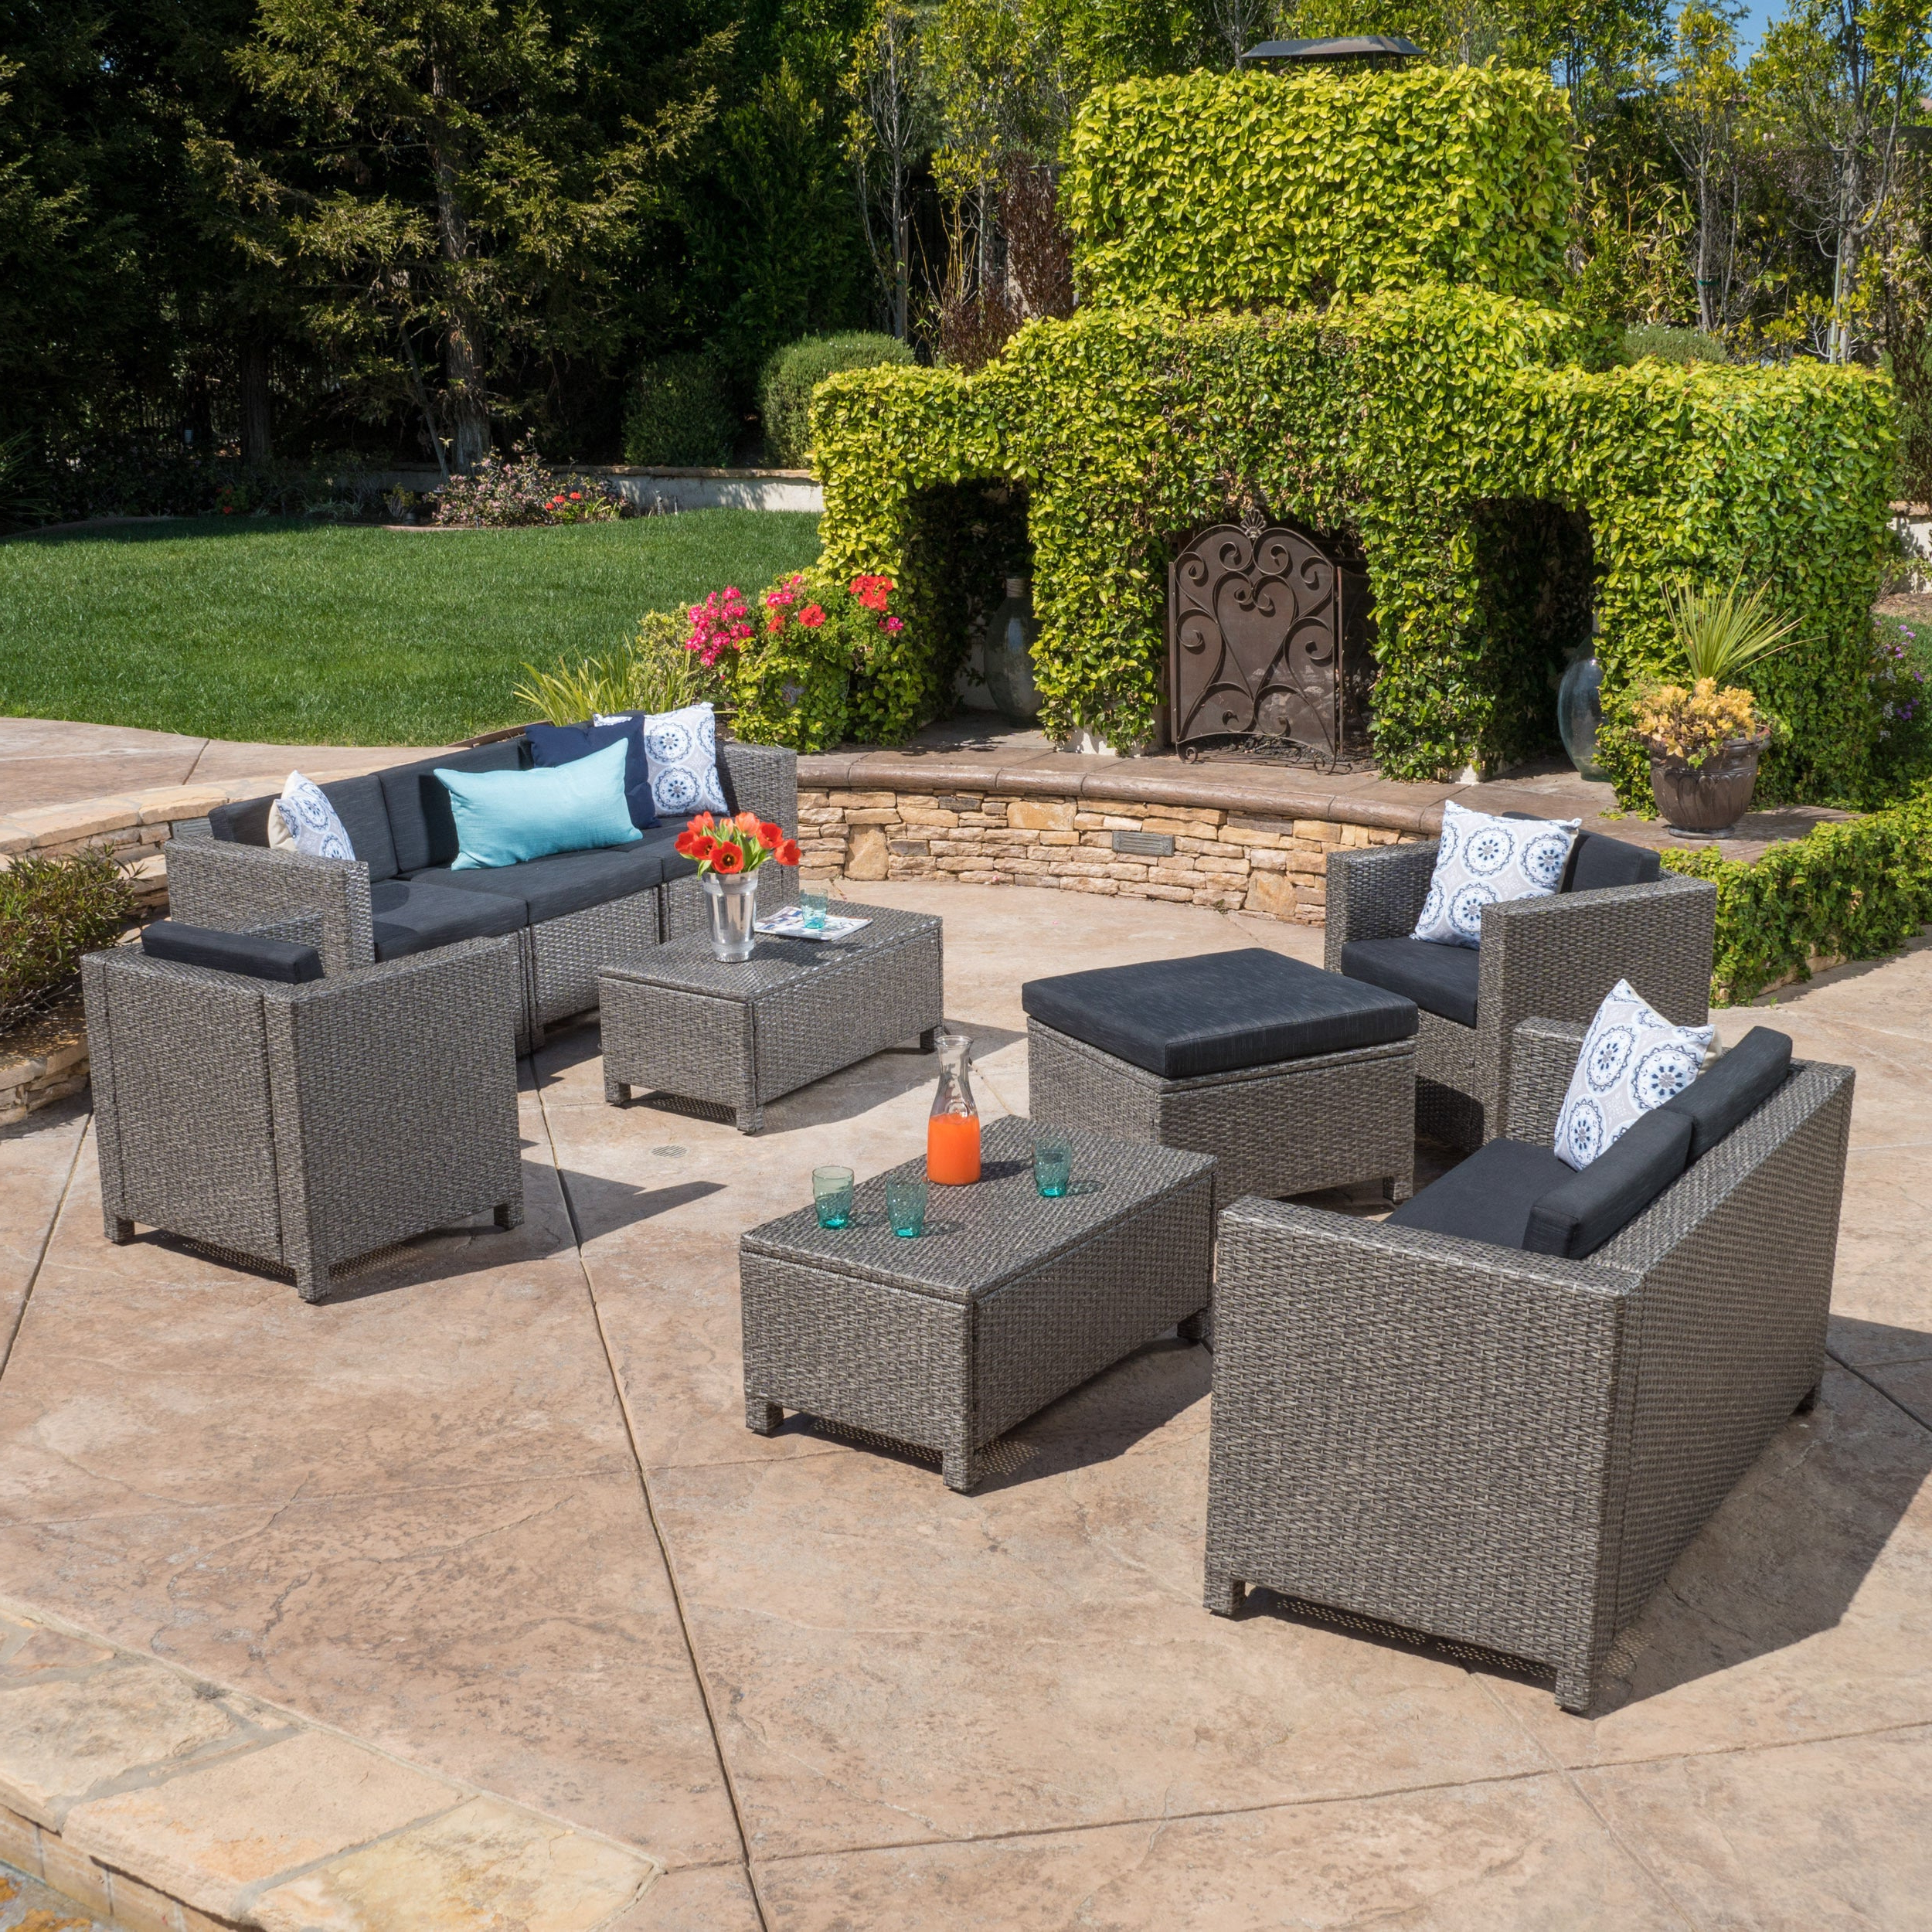 Trendy Details About Puerta Outdoor 9 Piece Wicker Sectional Sofa Set With Within Catalina Outdoor Right Arm Sectional Pieces With Cushions (View 19 of 25)